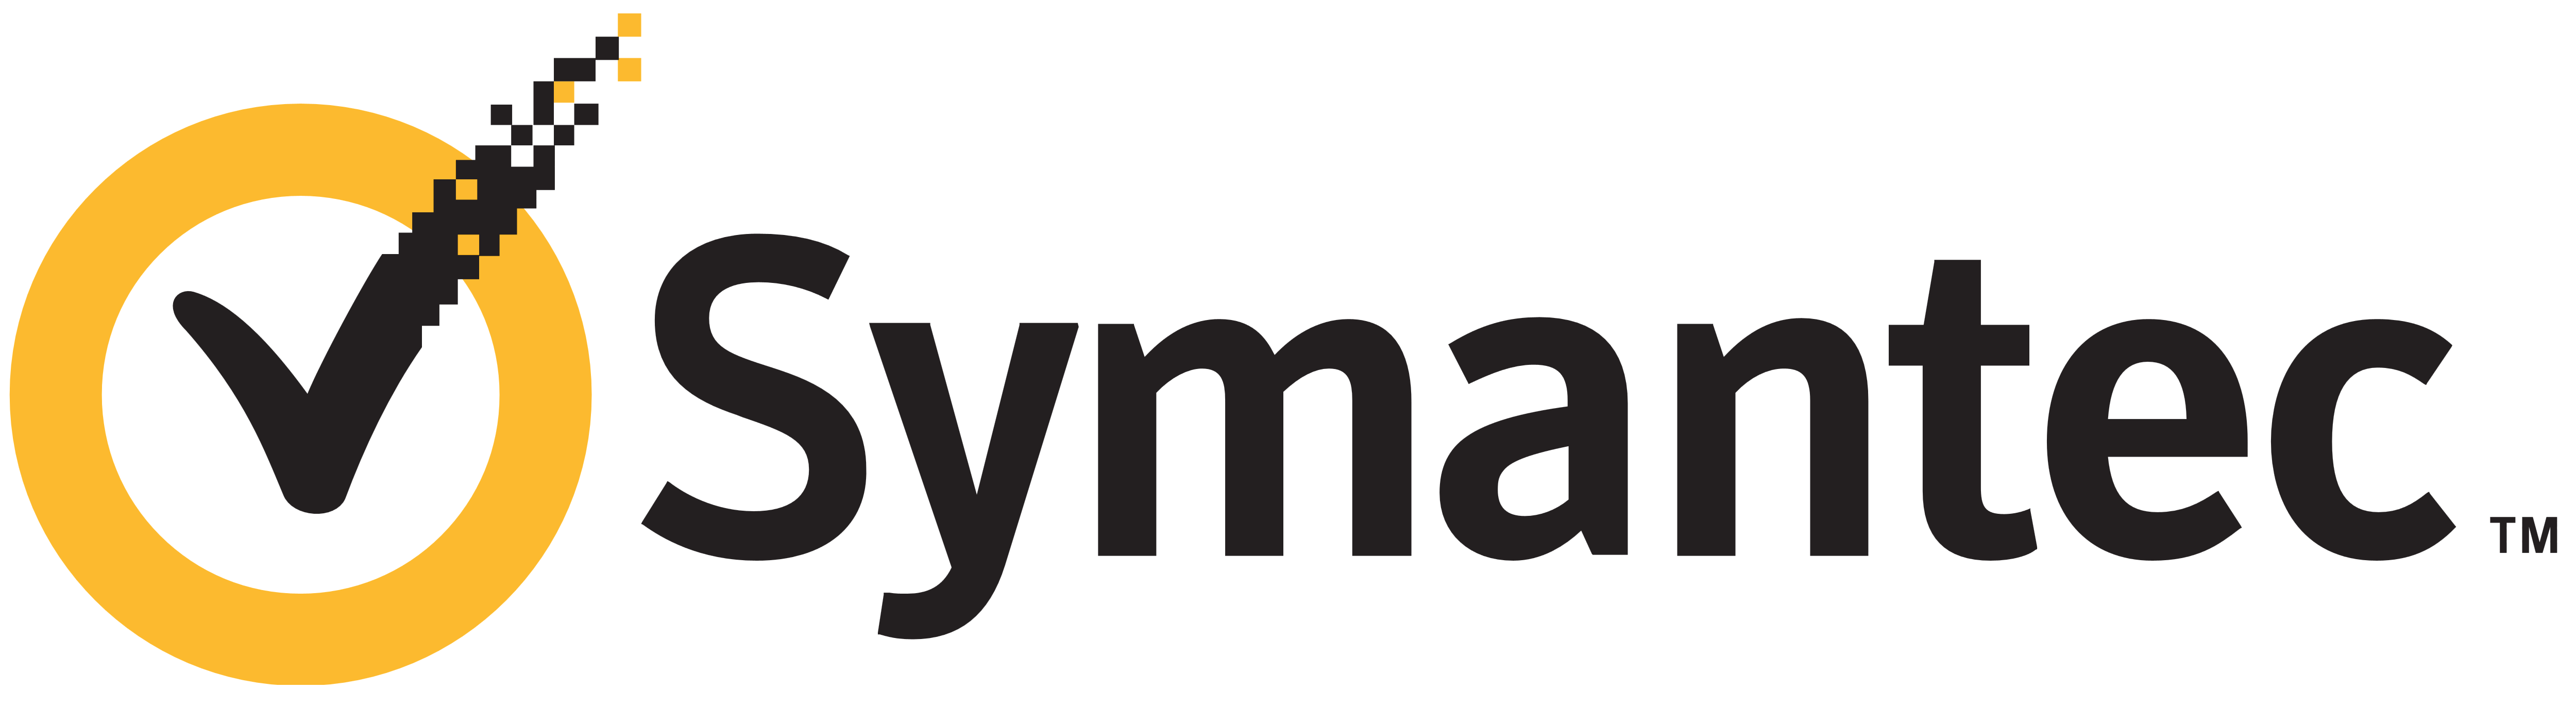 Symantec – Logos Download